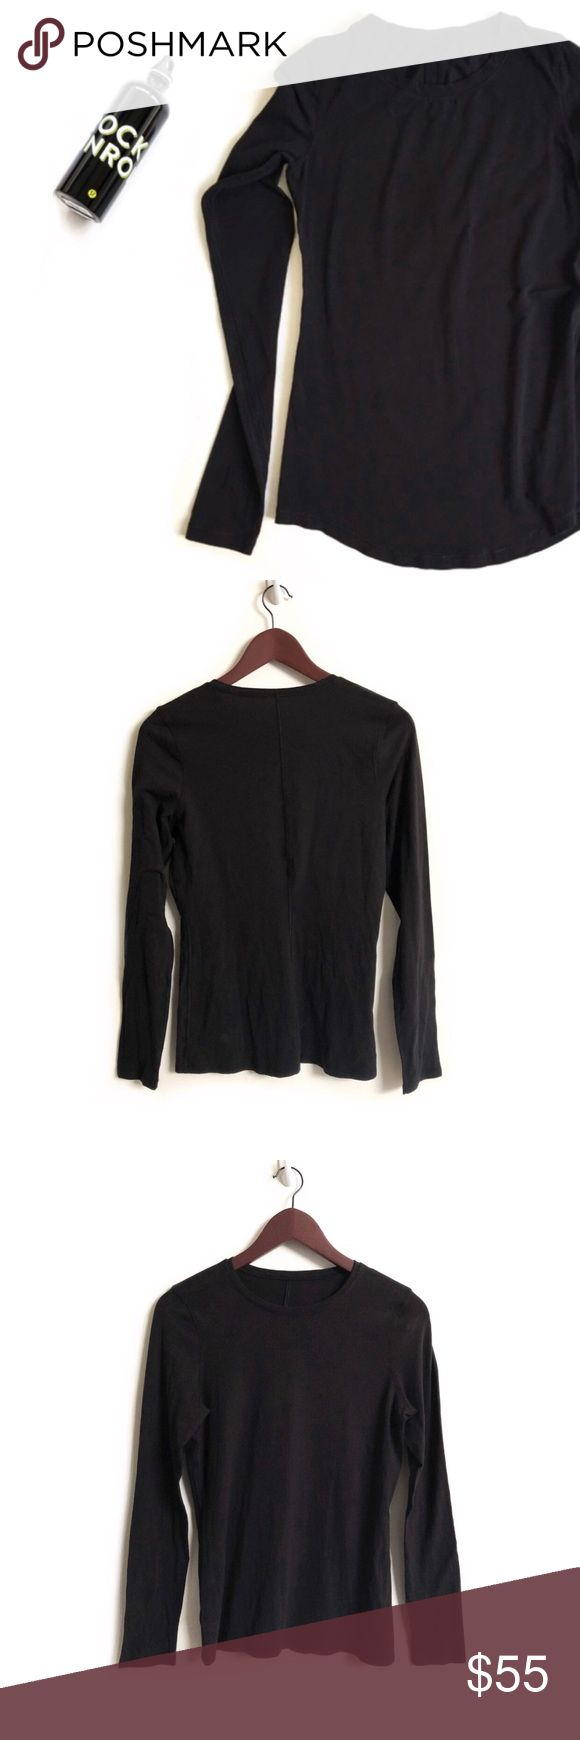 Lululemon Long Sleeve Lululemon Long Sleeve Top. Material unknown. Feels Cottony Soft. Great Quality. Normal Wear. Lint. Good Preowned Condition. No Size Dot or Tag. Matter Lululemon Logo Located on the Lower Back Side 🚫NO trades🚫 lululemon athletica Tops Tees - Long Sleeve